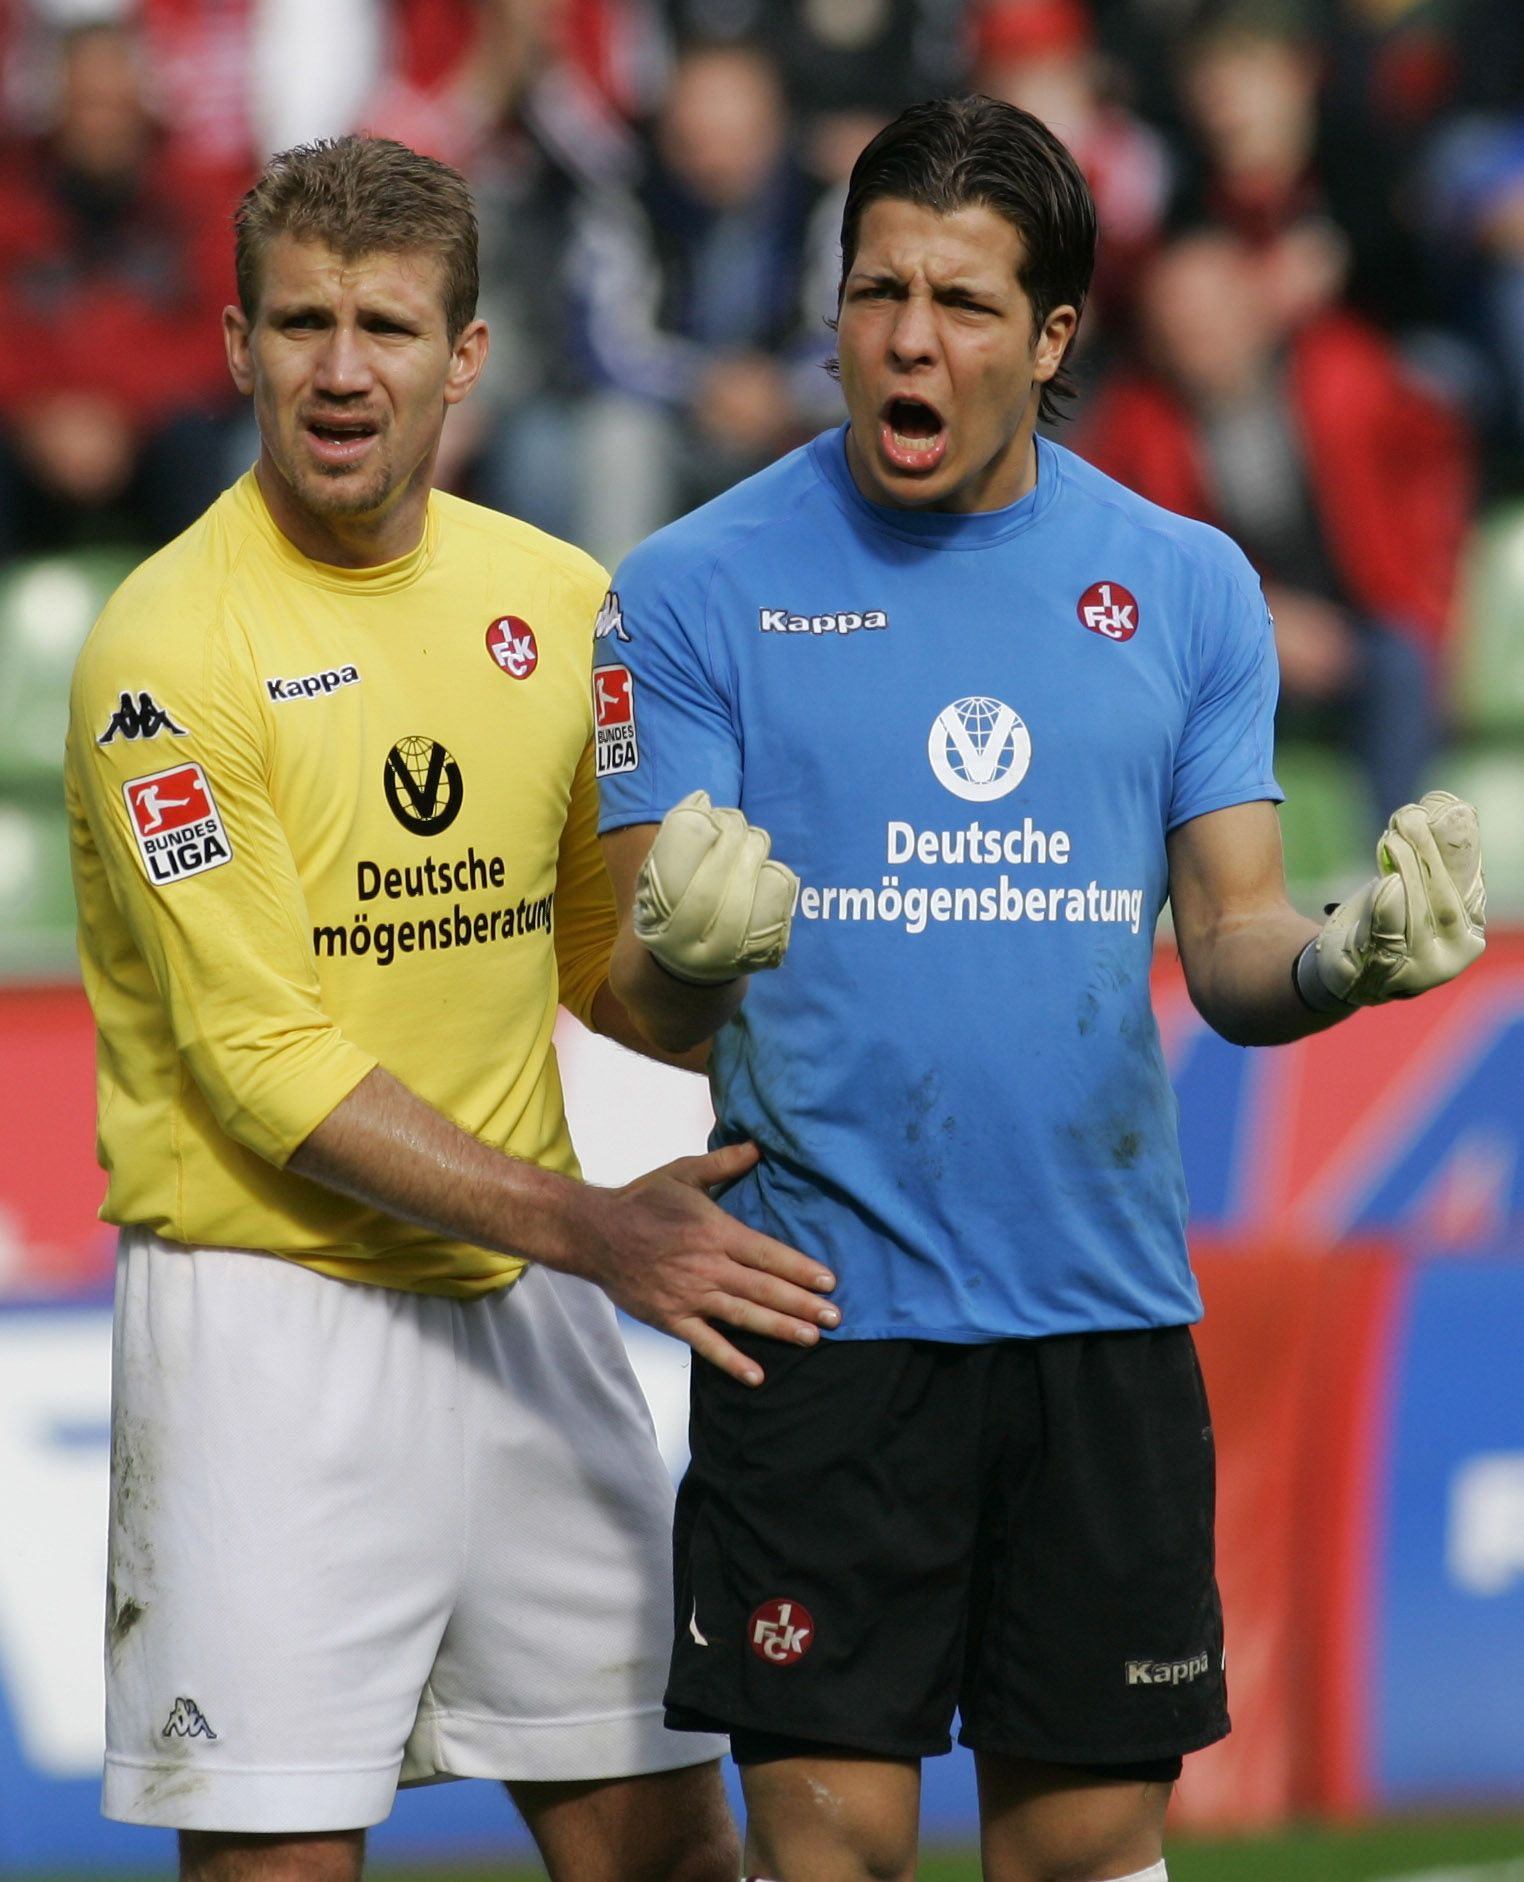 Kaiserslautern's Pletsch and Fromlowitz react during their German Bundesliga soccer match against Bayer Leverkusen in Leverkusen